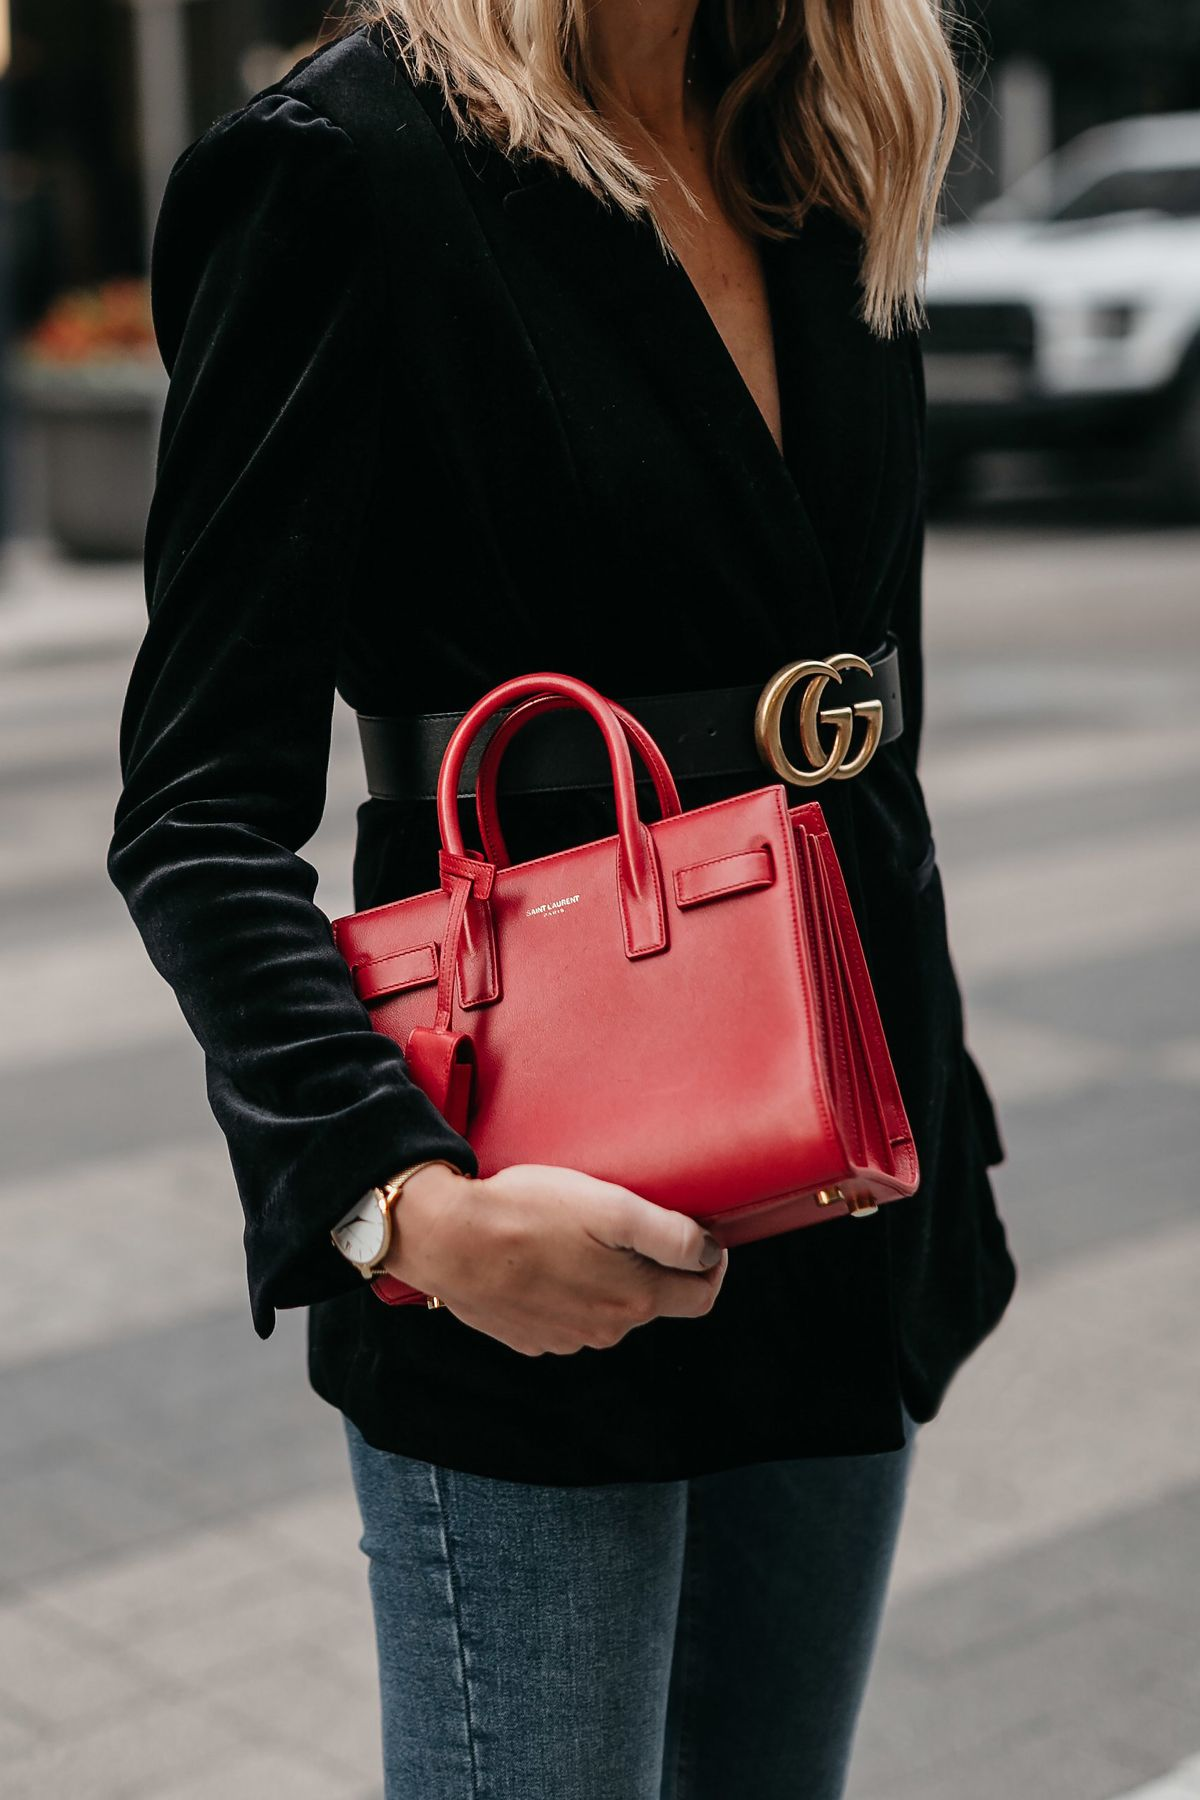 90f000c72a50 Saint Laurent Red Sac De Jour Black Velvet Blazer Gucci Marmont Belt Fashion  Jackson Dallas Blogger Fashion Blogger Street Style